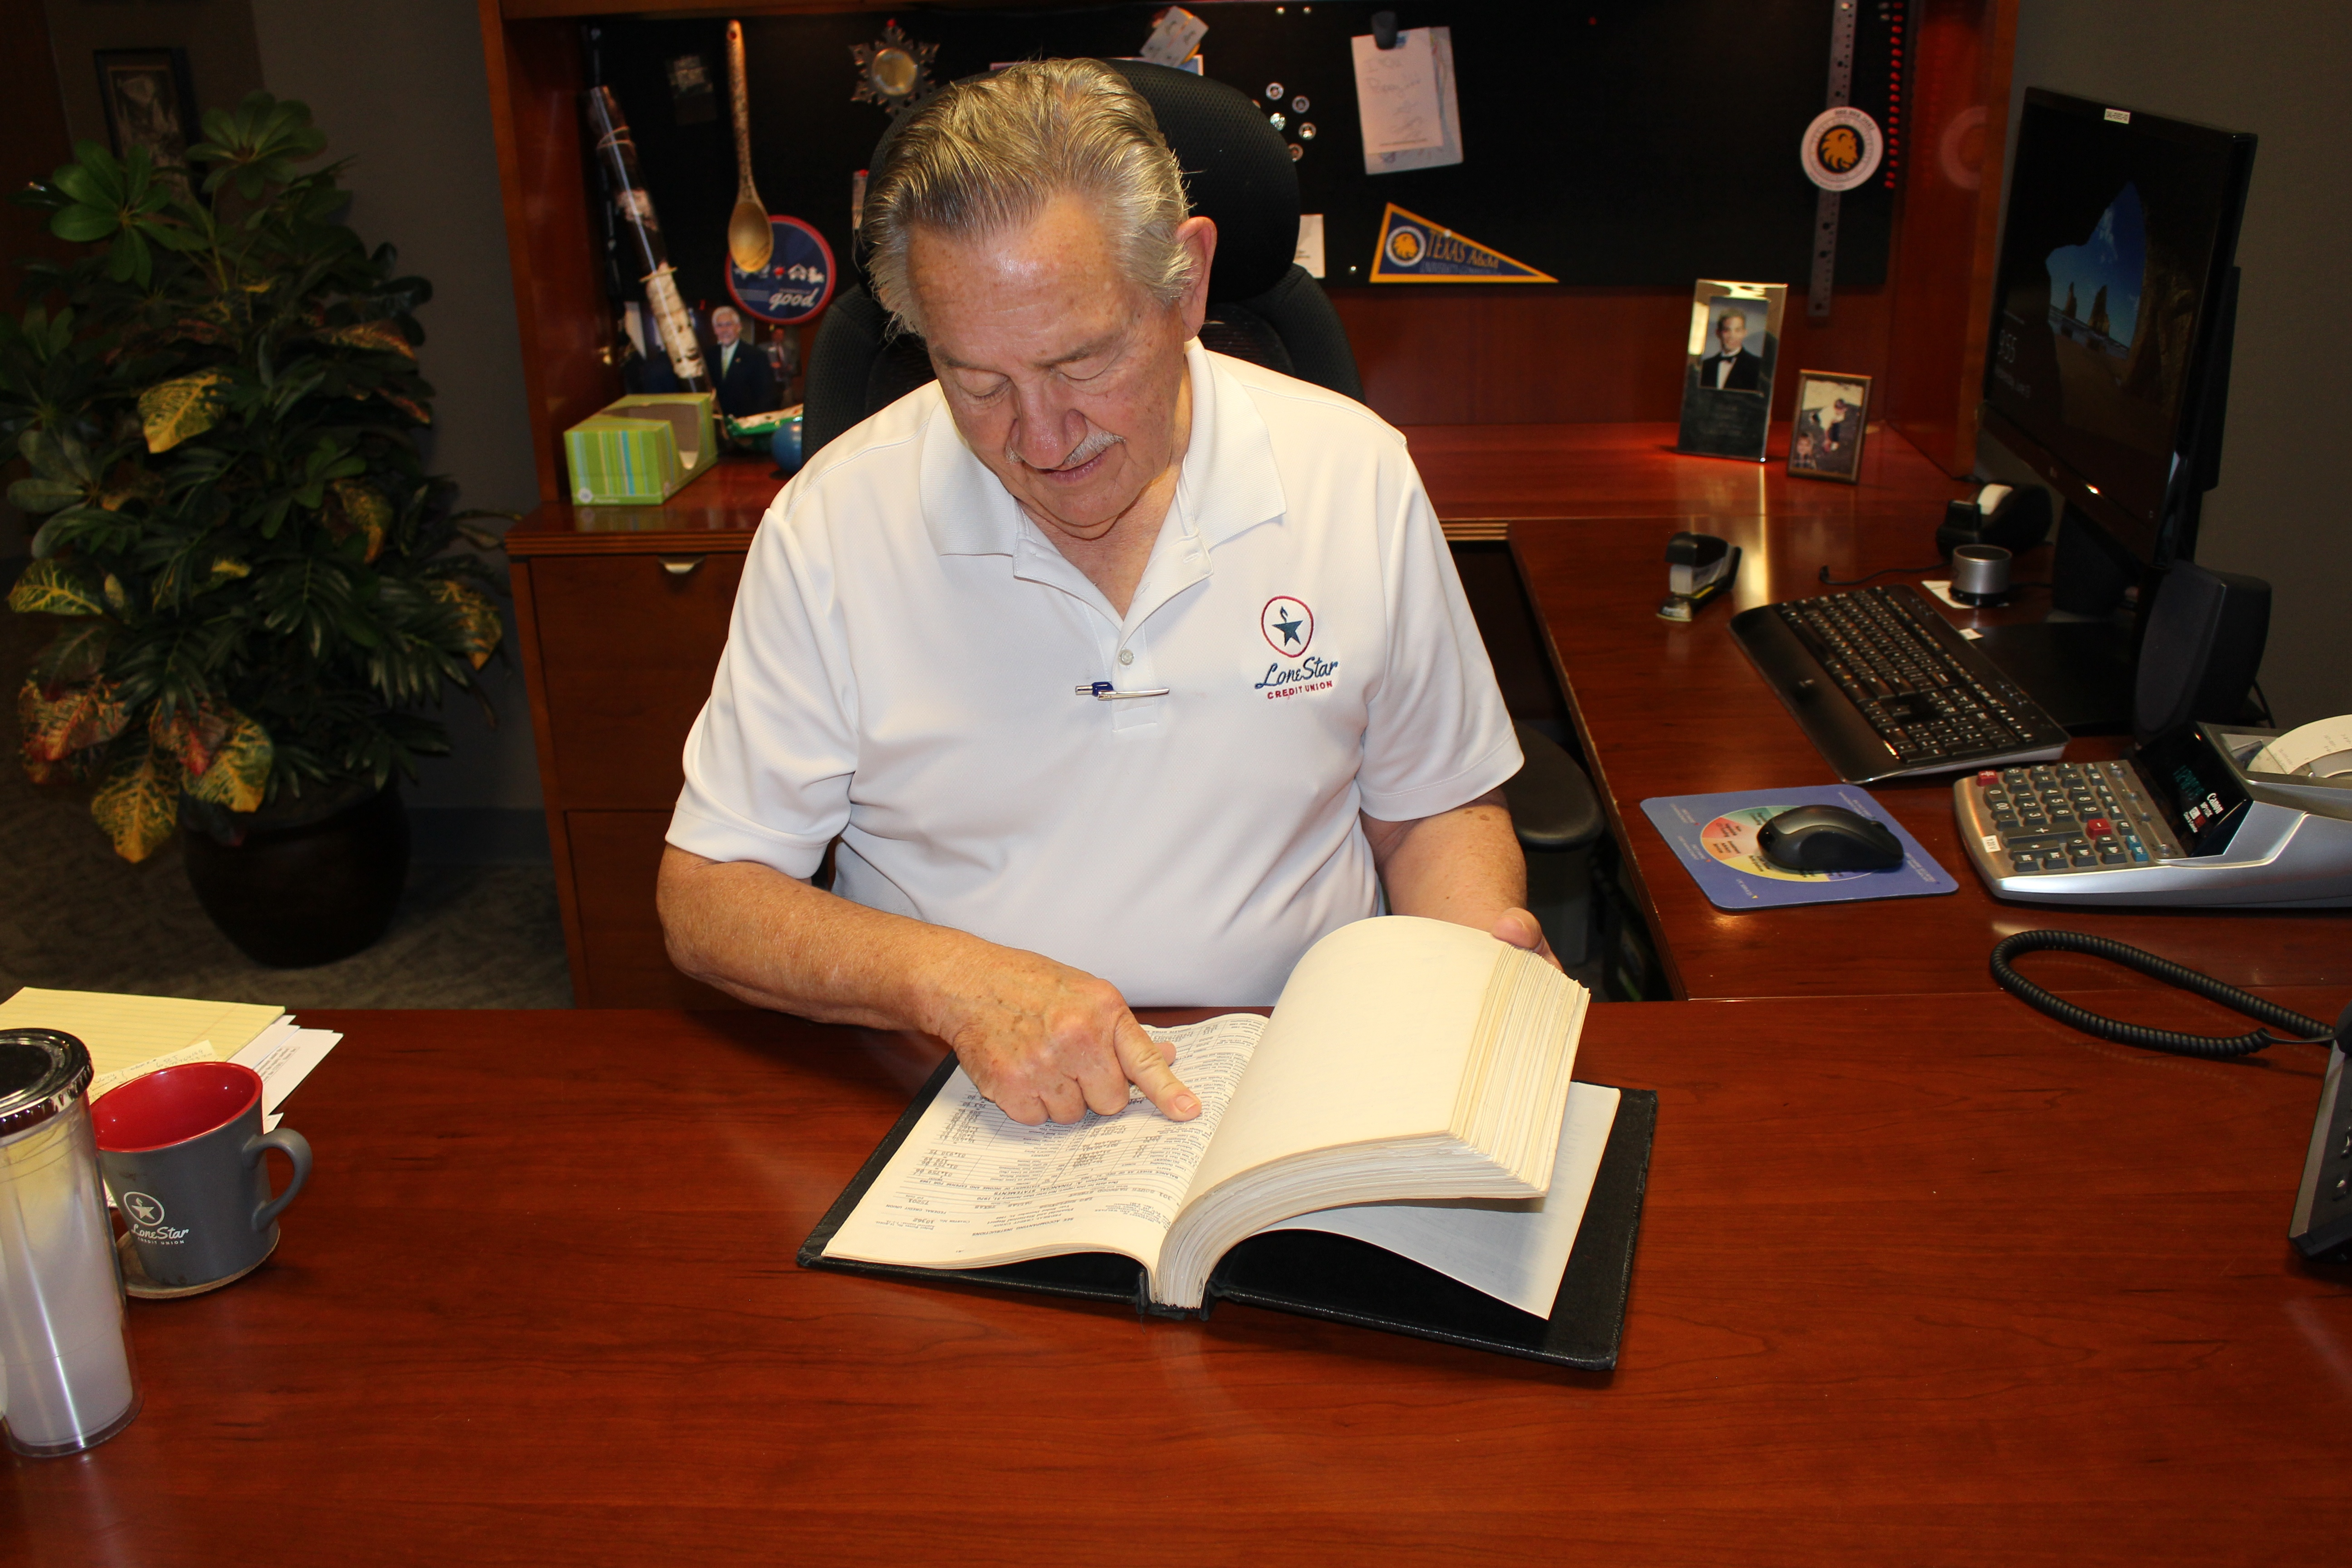 Man reading a book at a desk